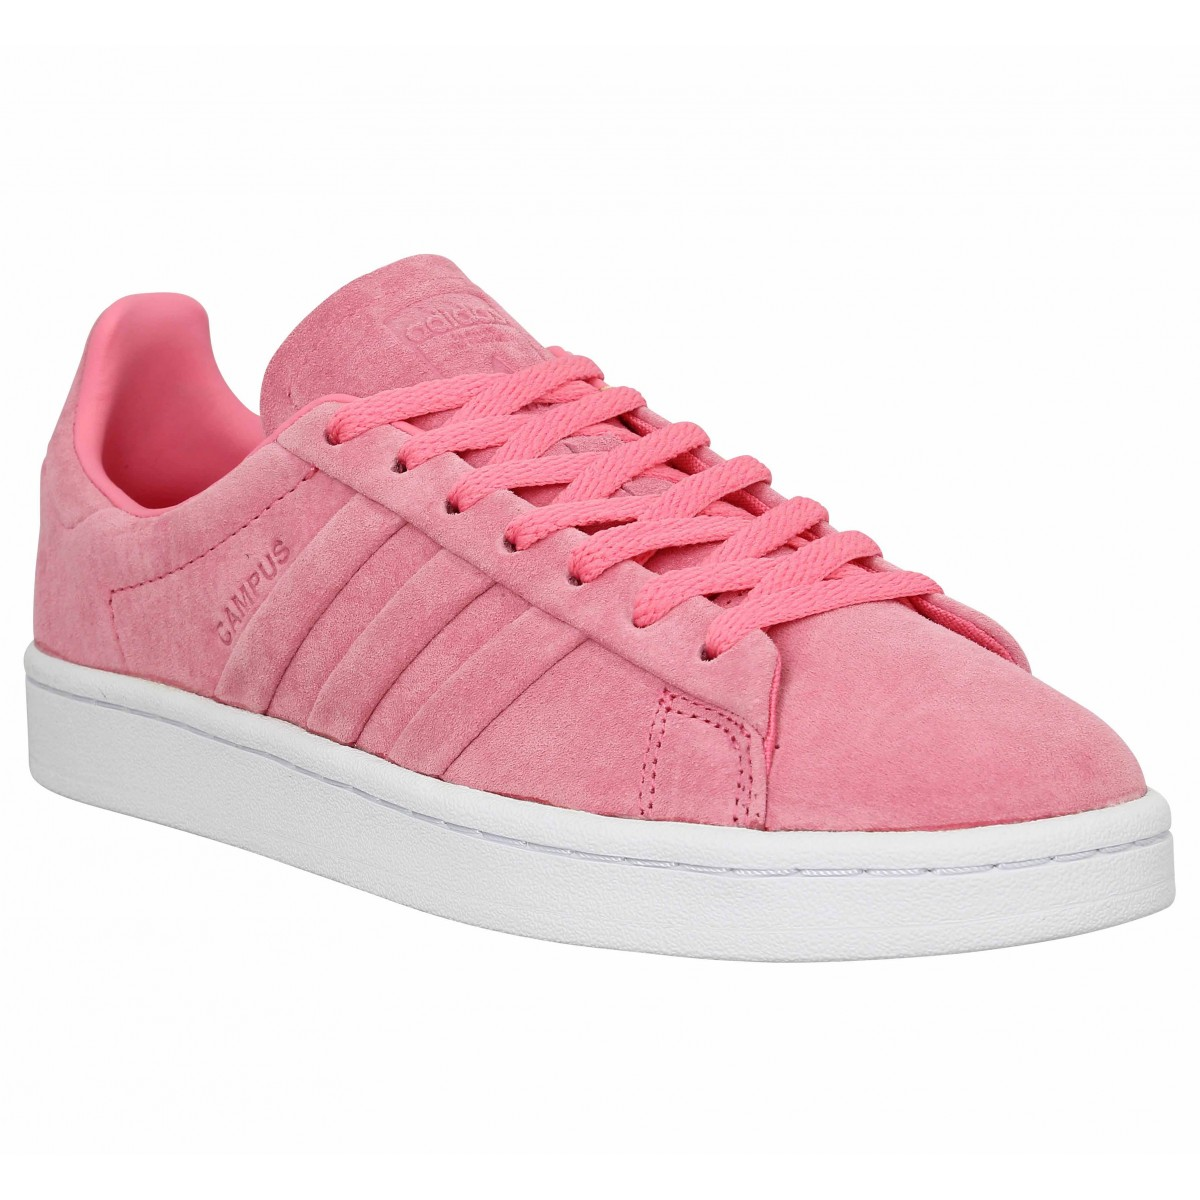 Adidas Femme Campus Velours -36-pink